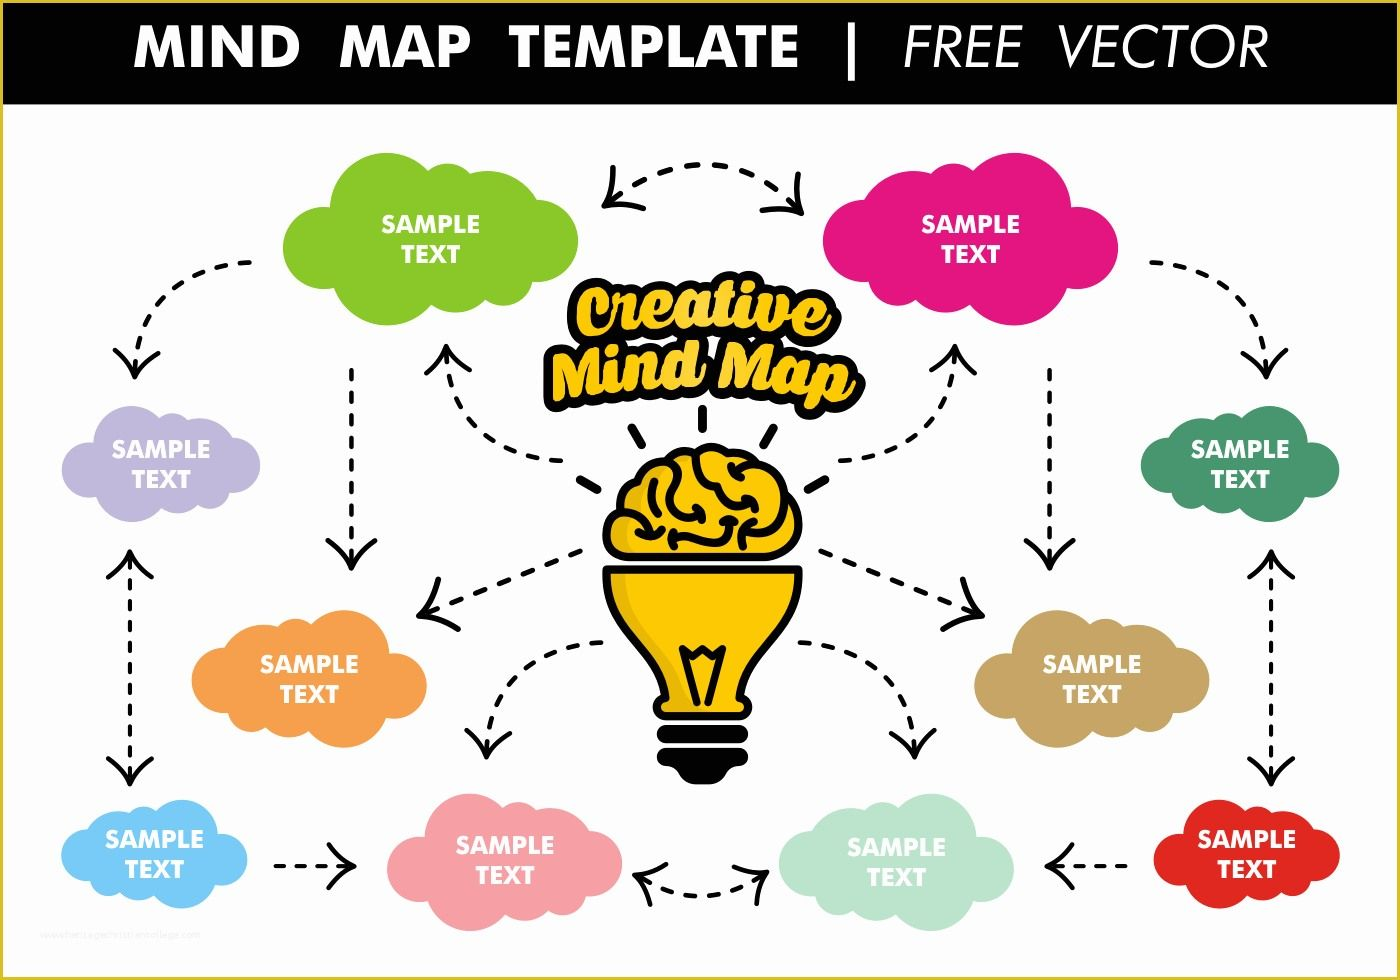 Mind Map Template Free Download Of Mind Map Template Free Vector Download Free Vector Art Creative Mind Map Mind Map Template Mind Map Mind map template free download